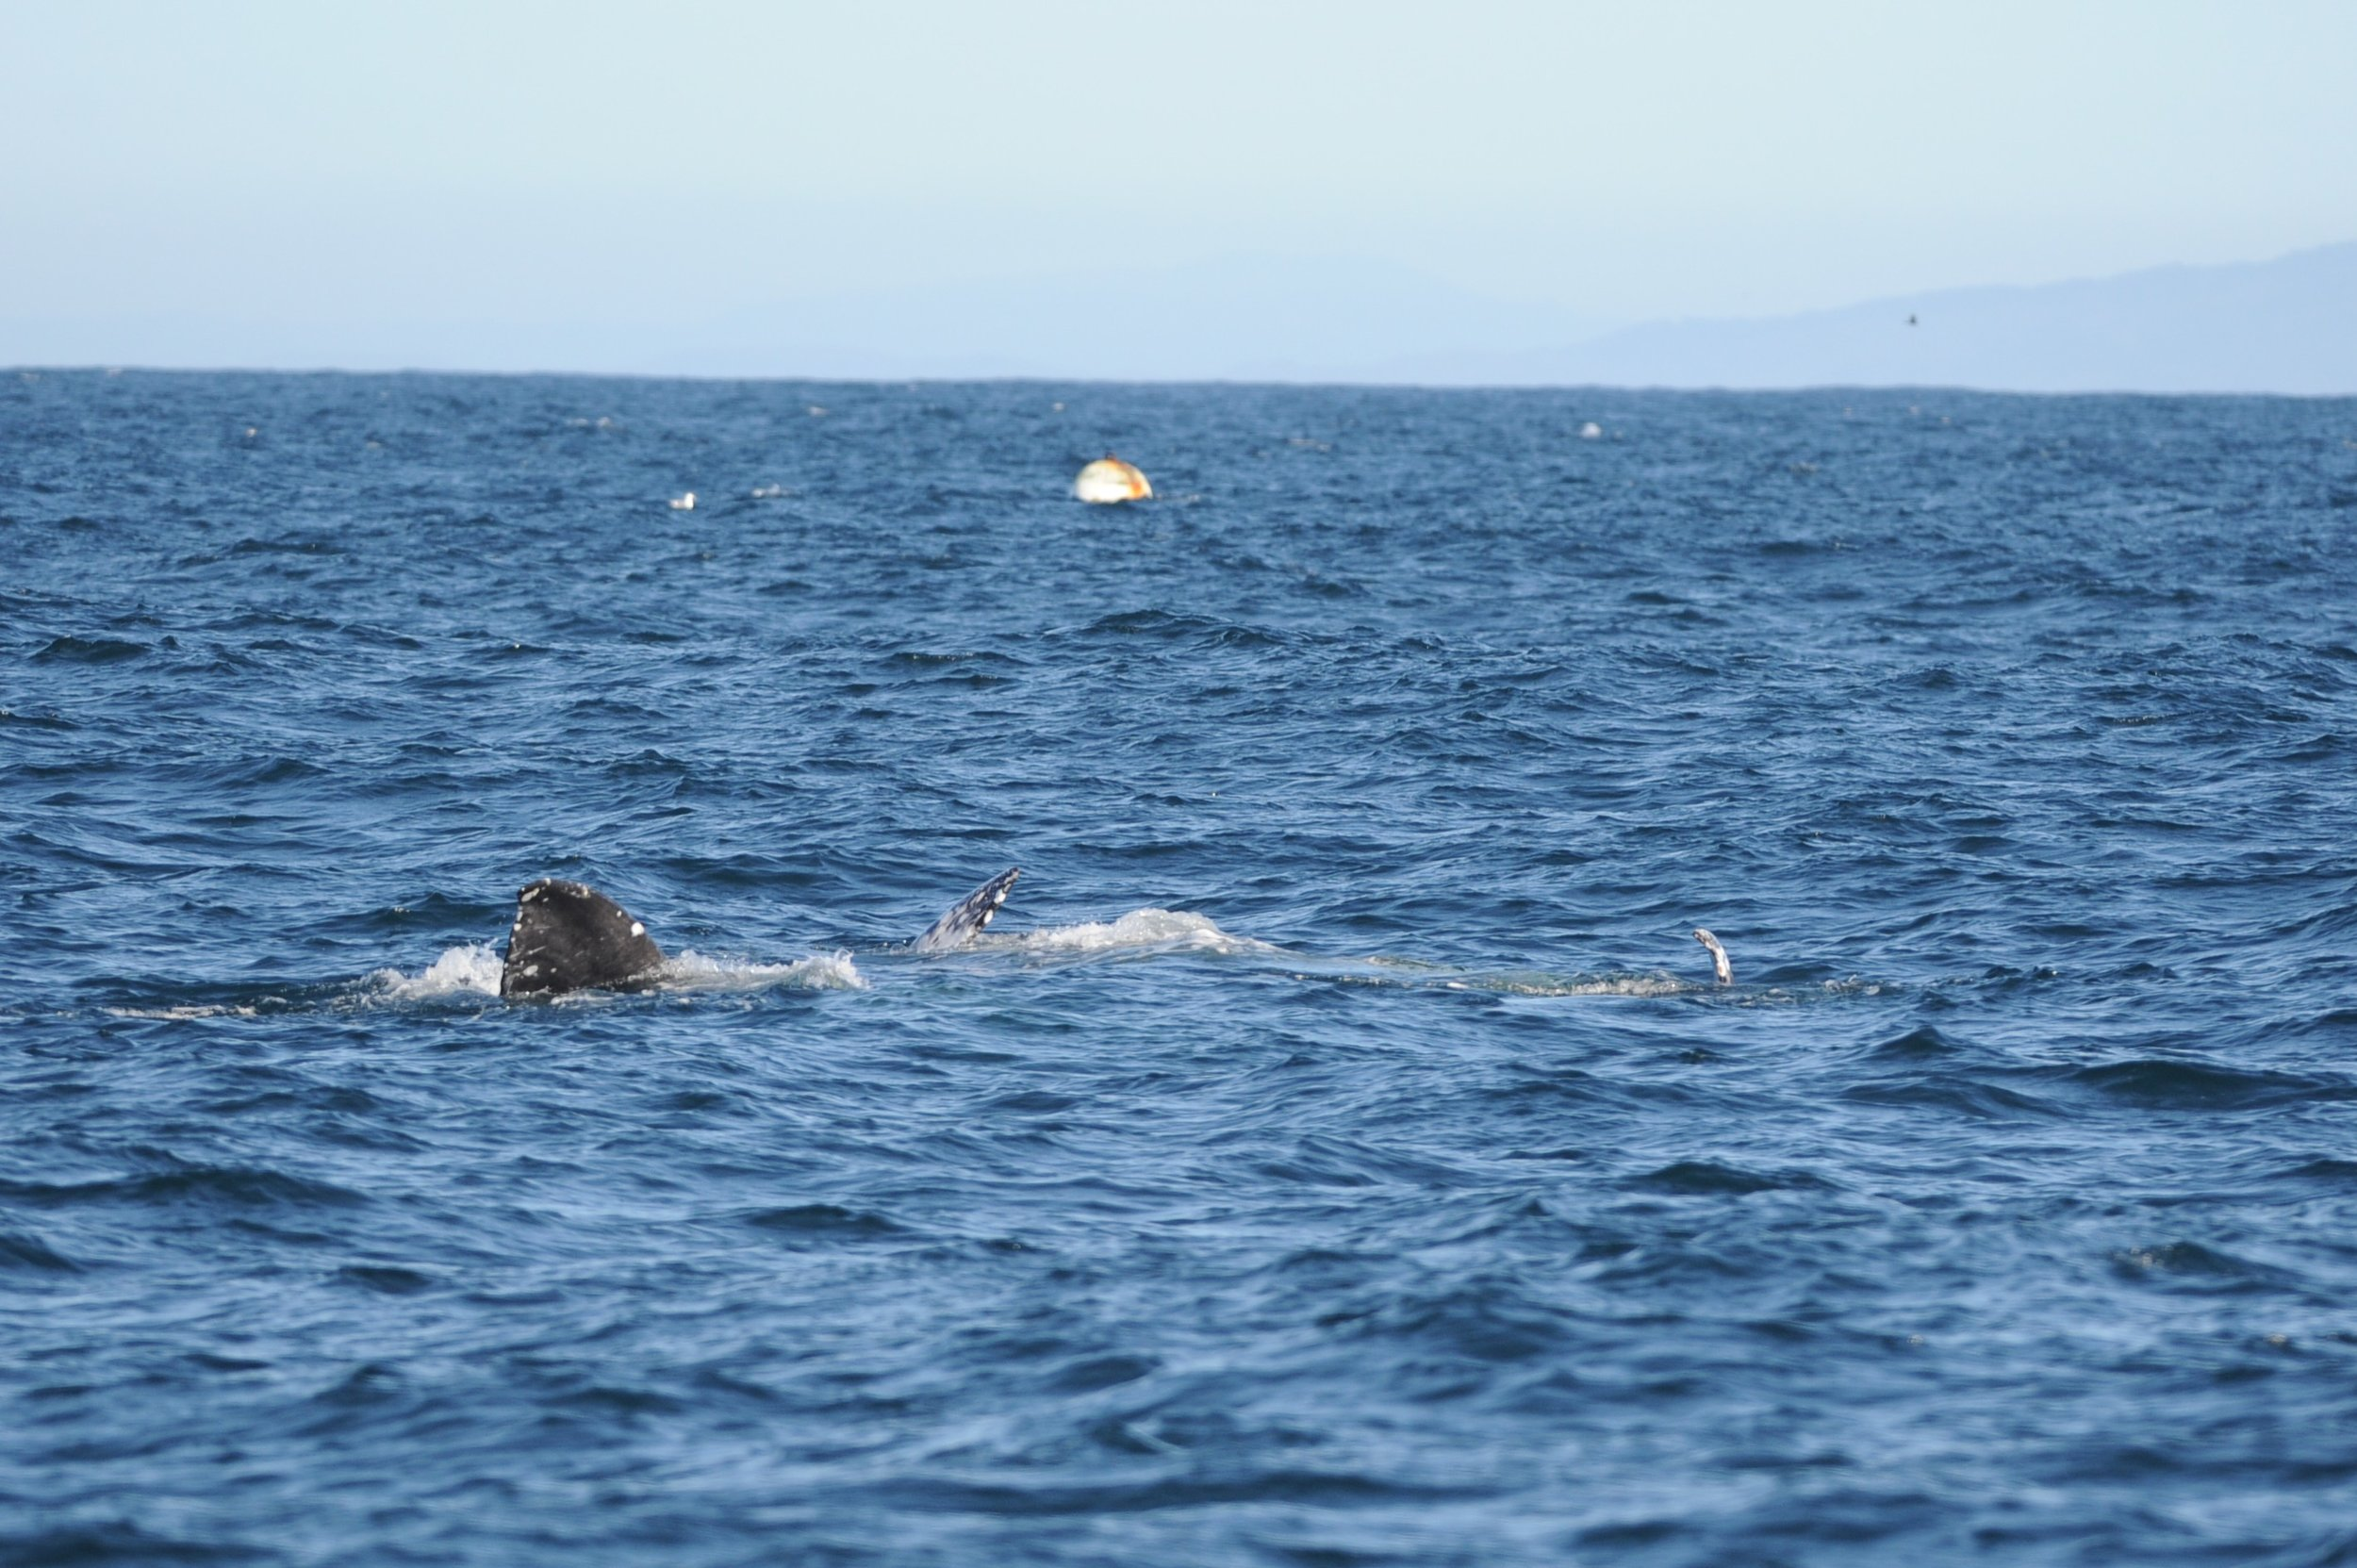 Whales floating on their sides, bellies facing each other. You can see one lobe of a fluke and some pectoral fins sticking out of the water. A few gray whales display mating behavior on their migration south, especially if they're later in the season.